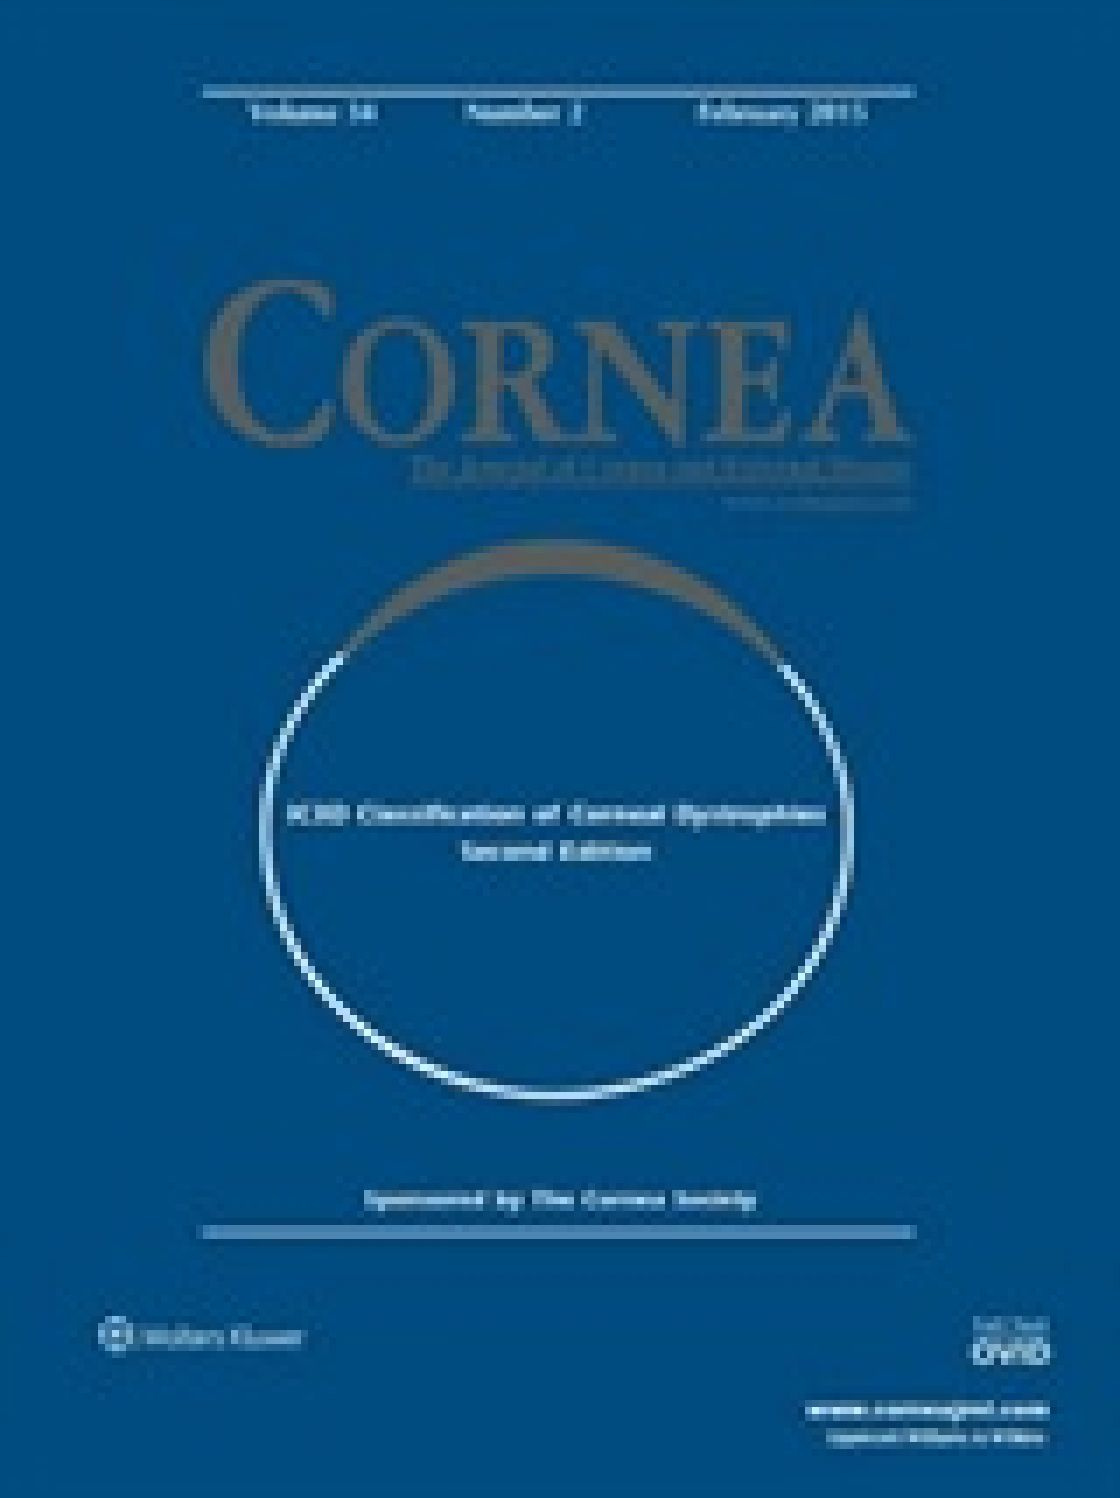 Measurement of central corneal thickness with optical low-coherence reflectometry and ultrasound pachymetry in normal and post-femtosecond laser in situ keratomileusis eyes